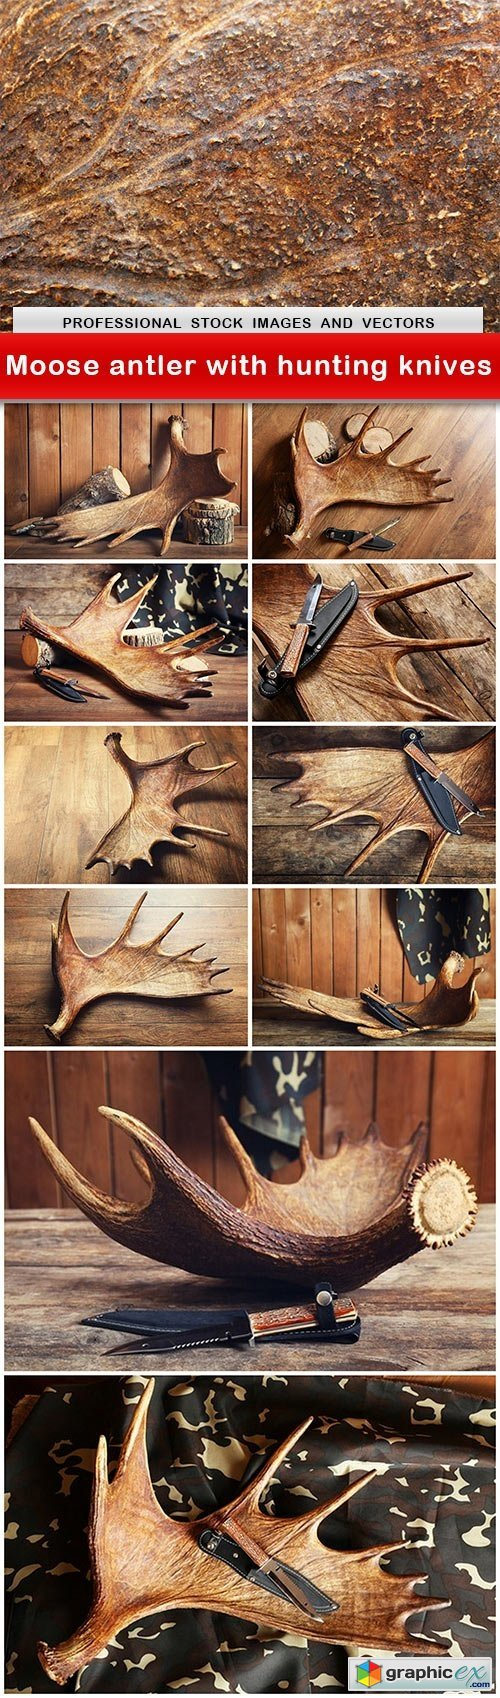 Moose antler with hunting knives - 11 UHQ JPEG